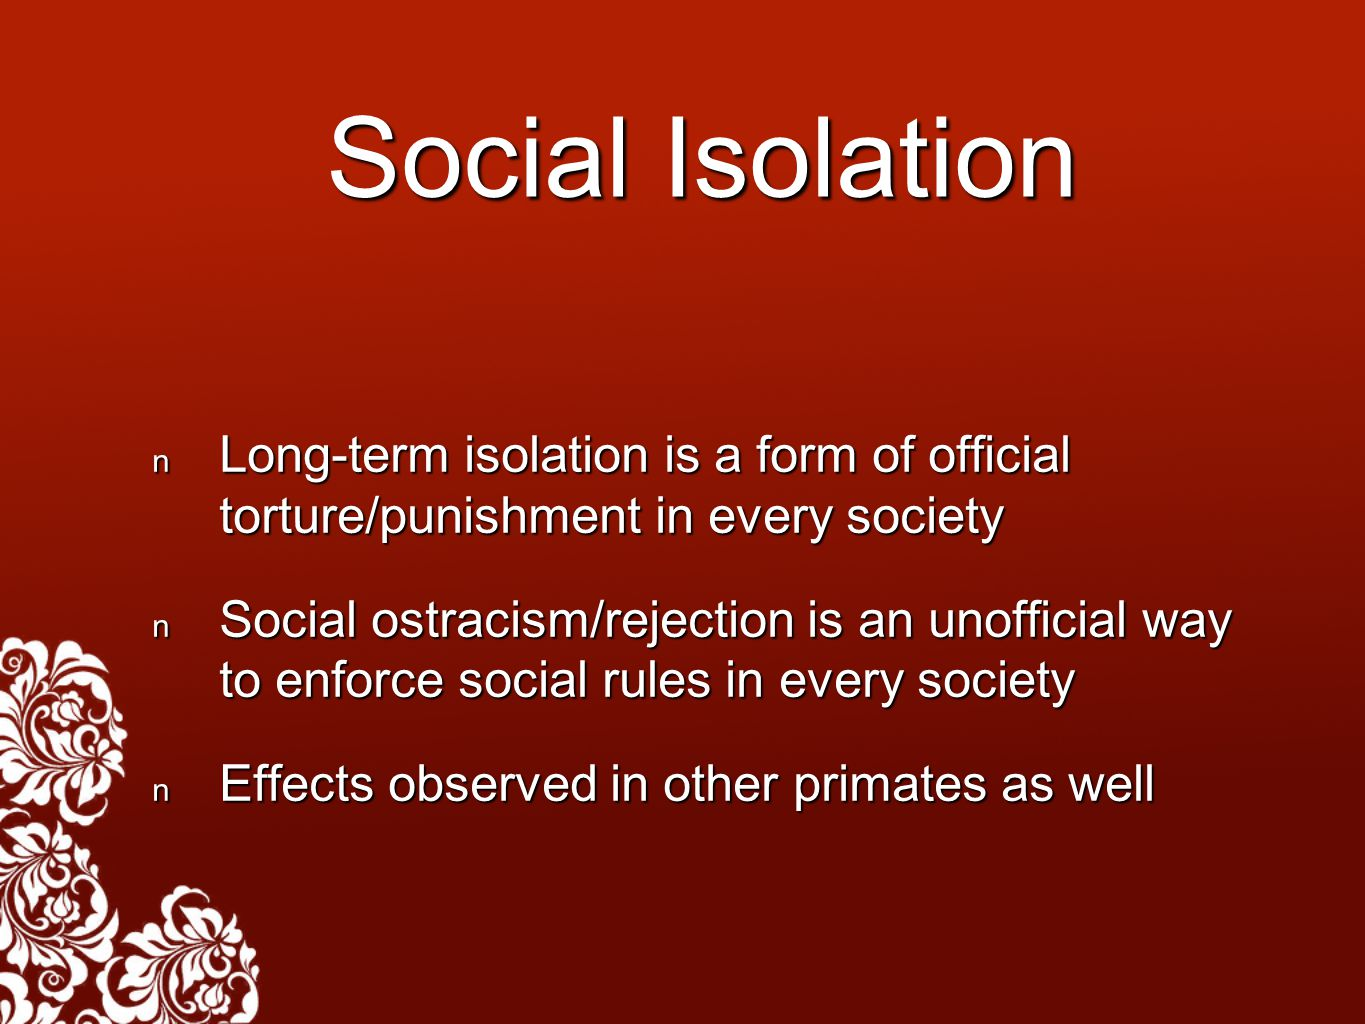 Social Isolation Long-term isolation is a form of official torture/punishment in every society Long-term isolation is a form of official torture/punis